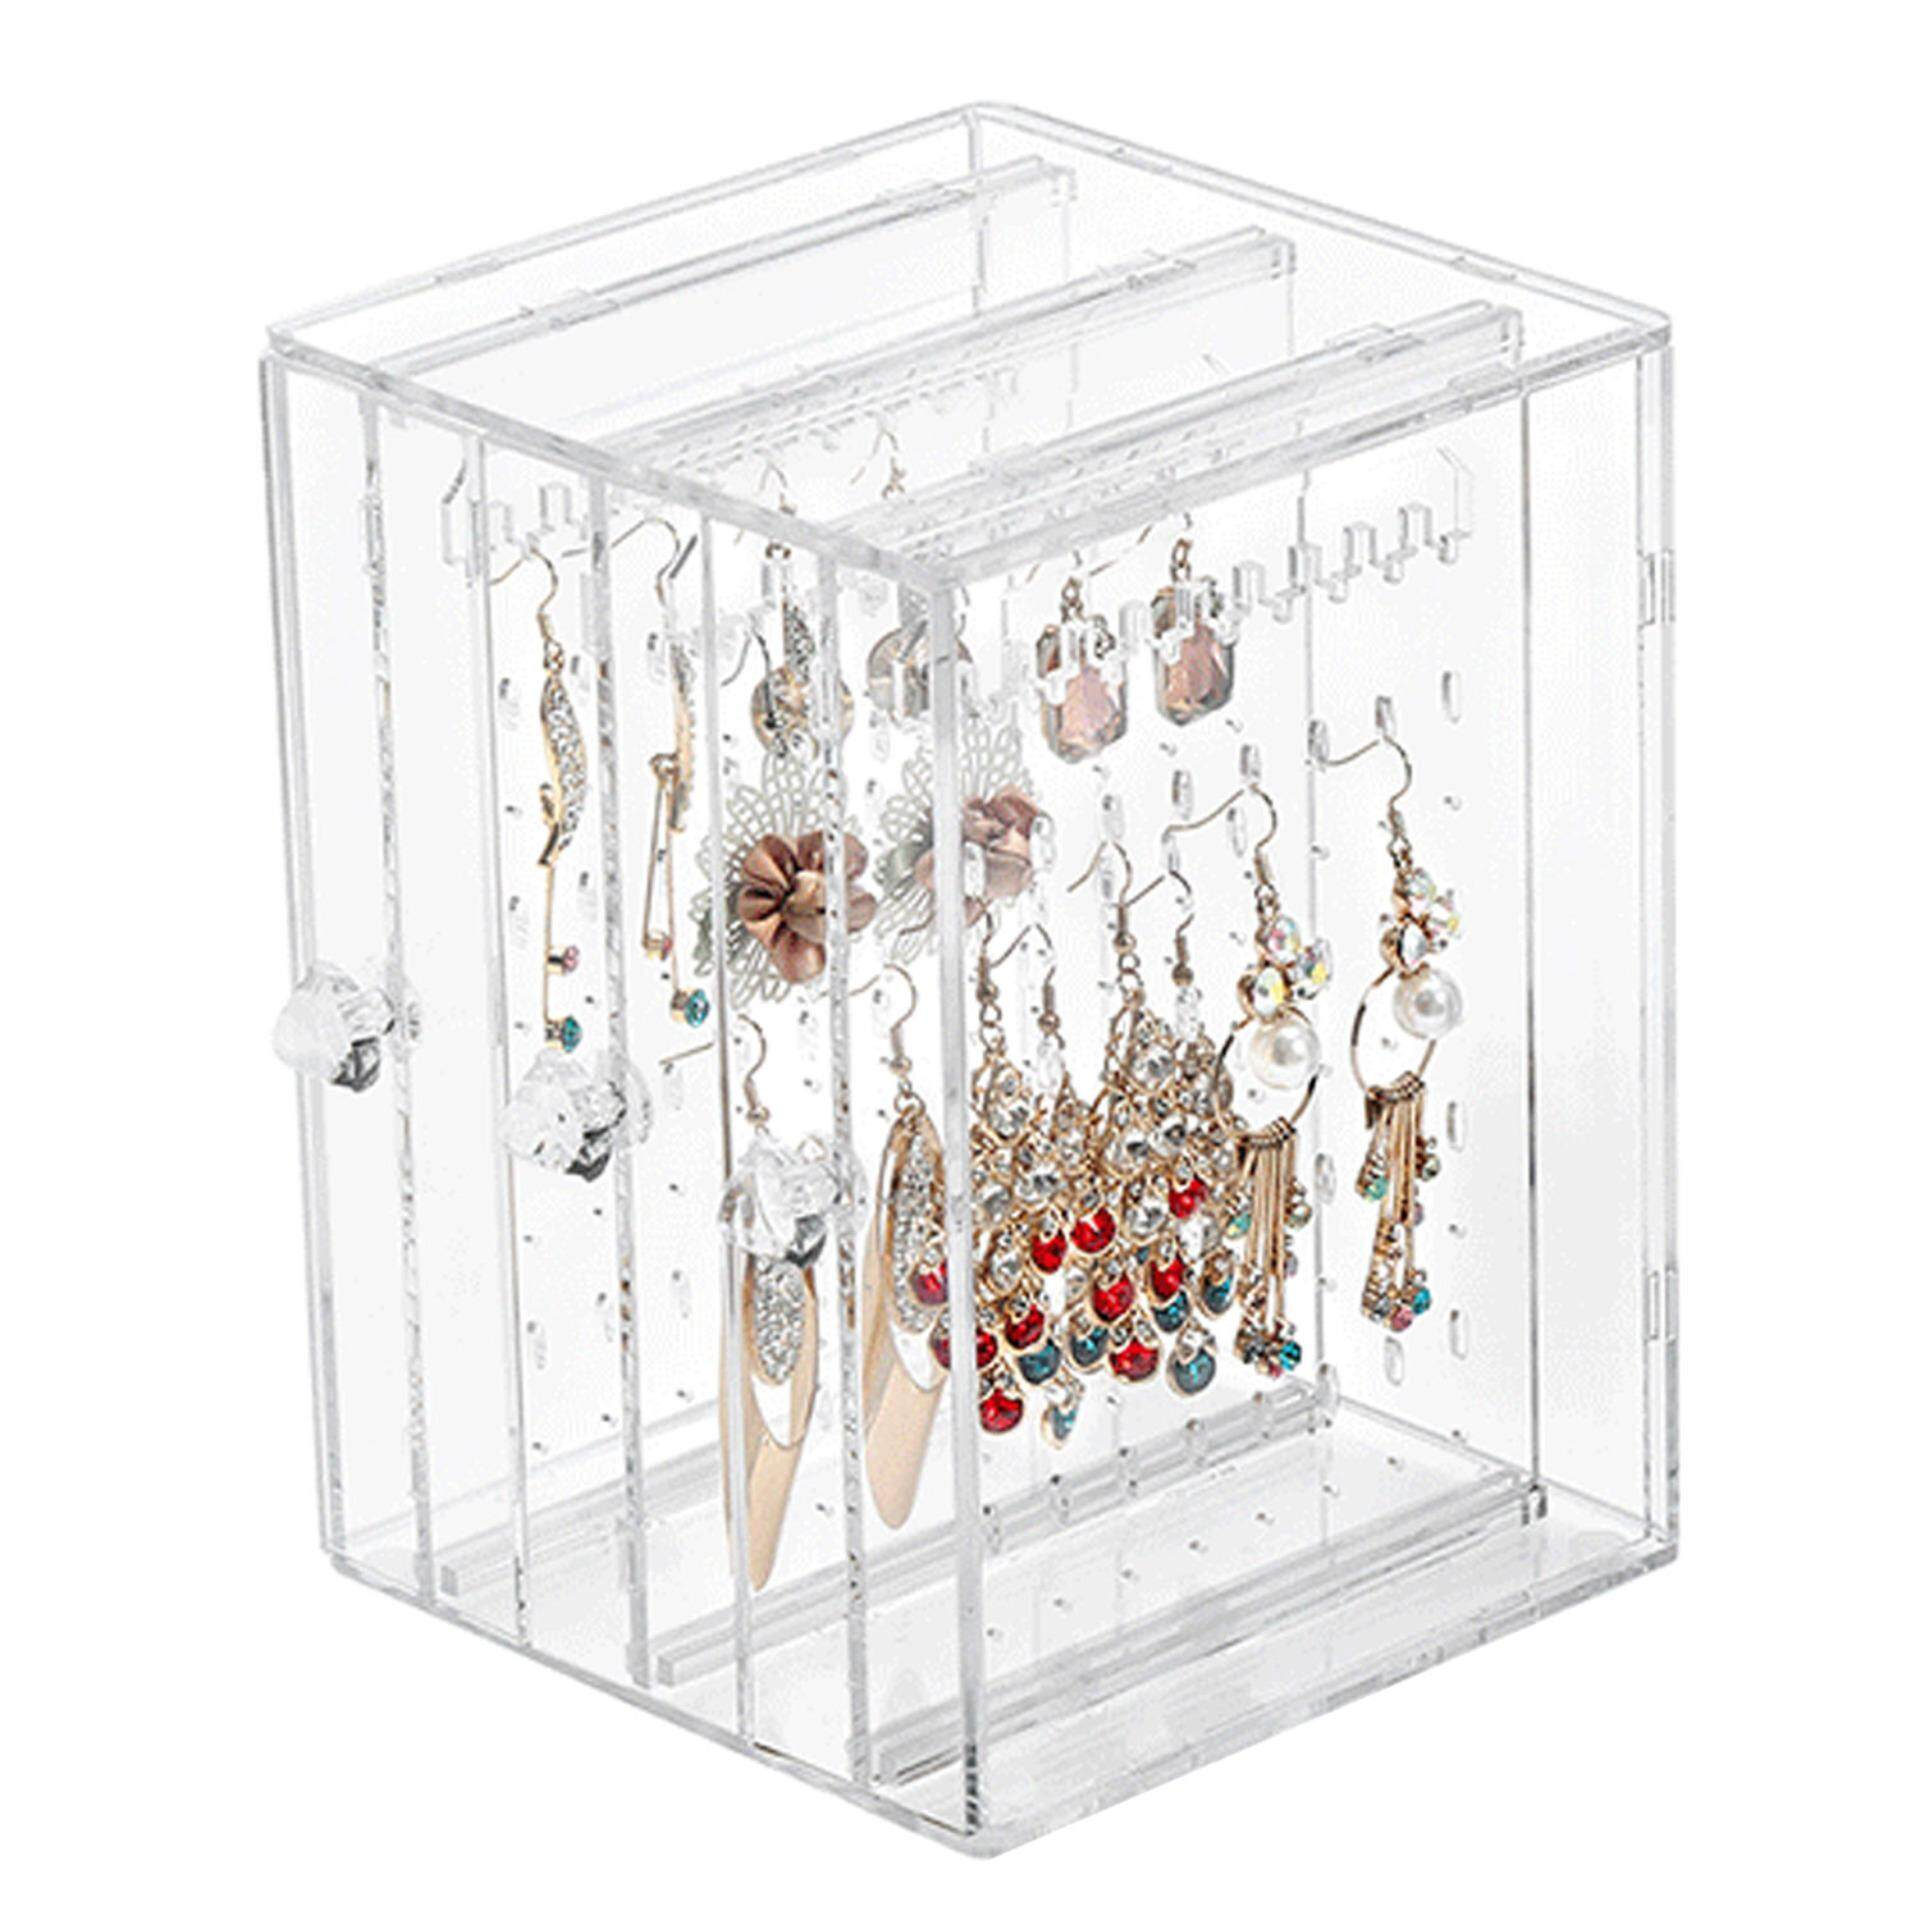 218 Holes Plastic Earring Display Stand Case Organizer Holder Jewelry Storage Box With 3 Vertical Drawer